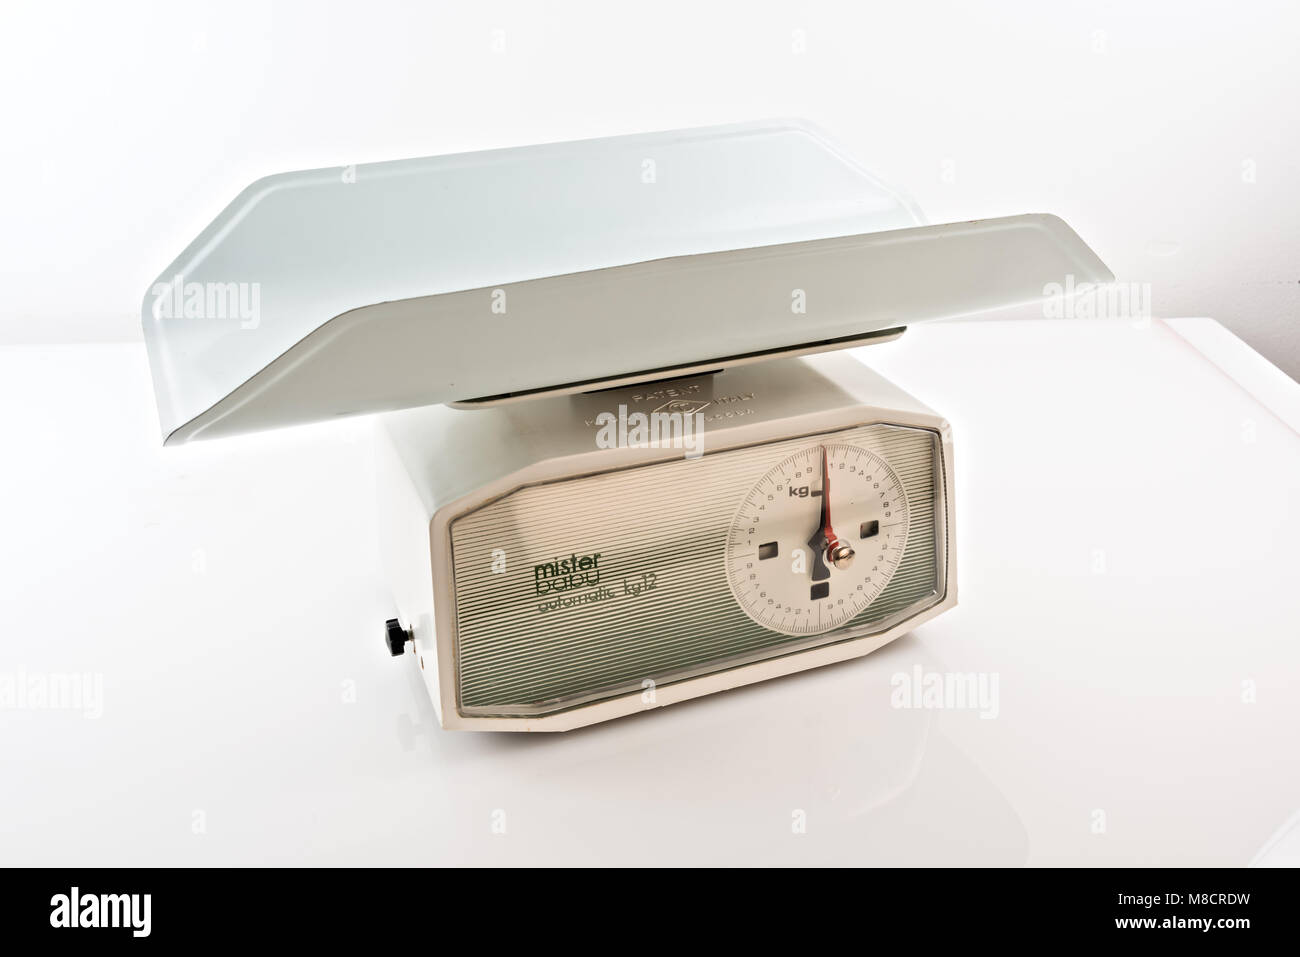 vintage kitchen scales on a white background with a newborn weighing plate 2 - Stock Image